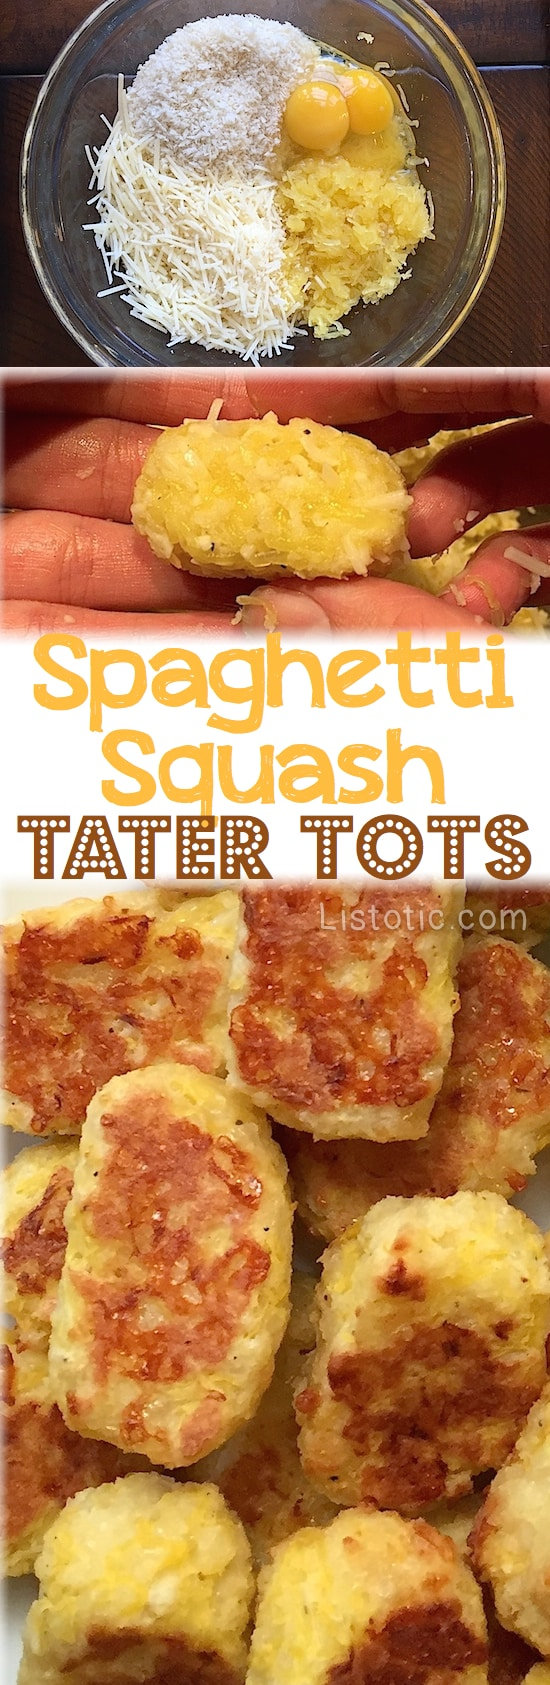 Easy Baked Spaghetti Squash Tater Tots -- These are so good, and only 4 ingredients! A nice healthy snack idea. Even kids love them. | Listotic.com